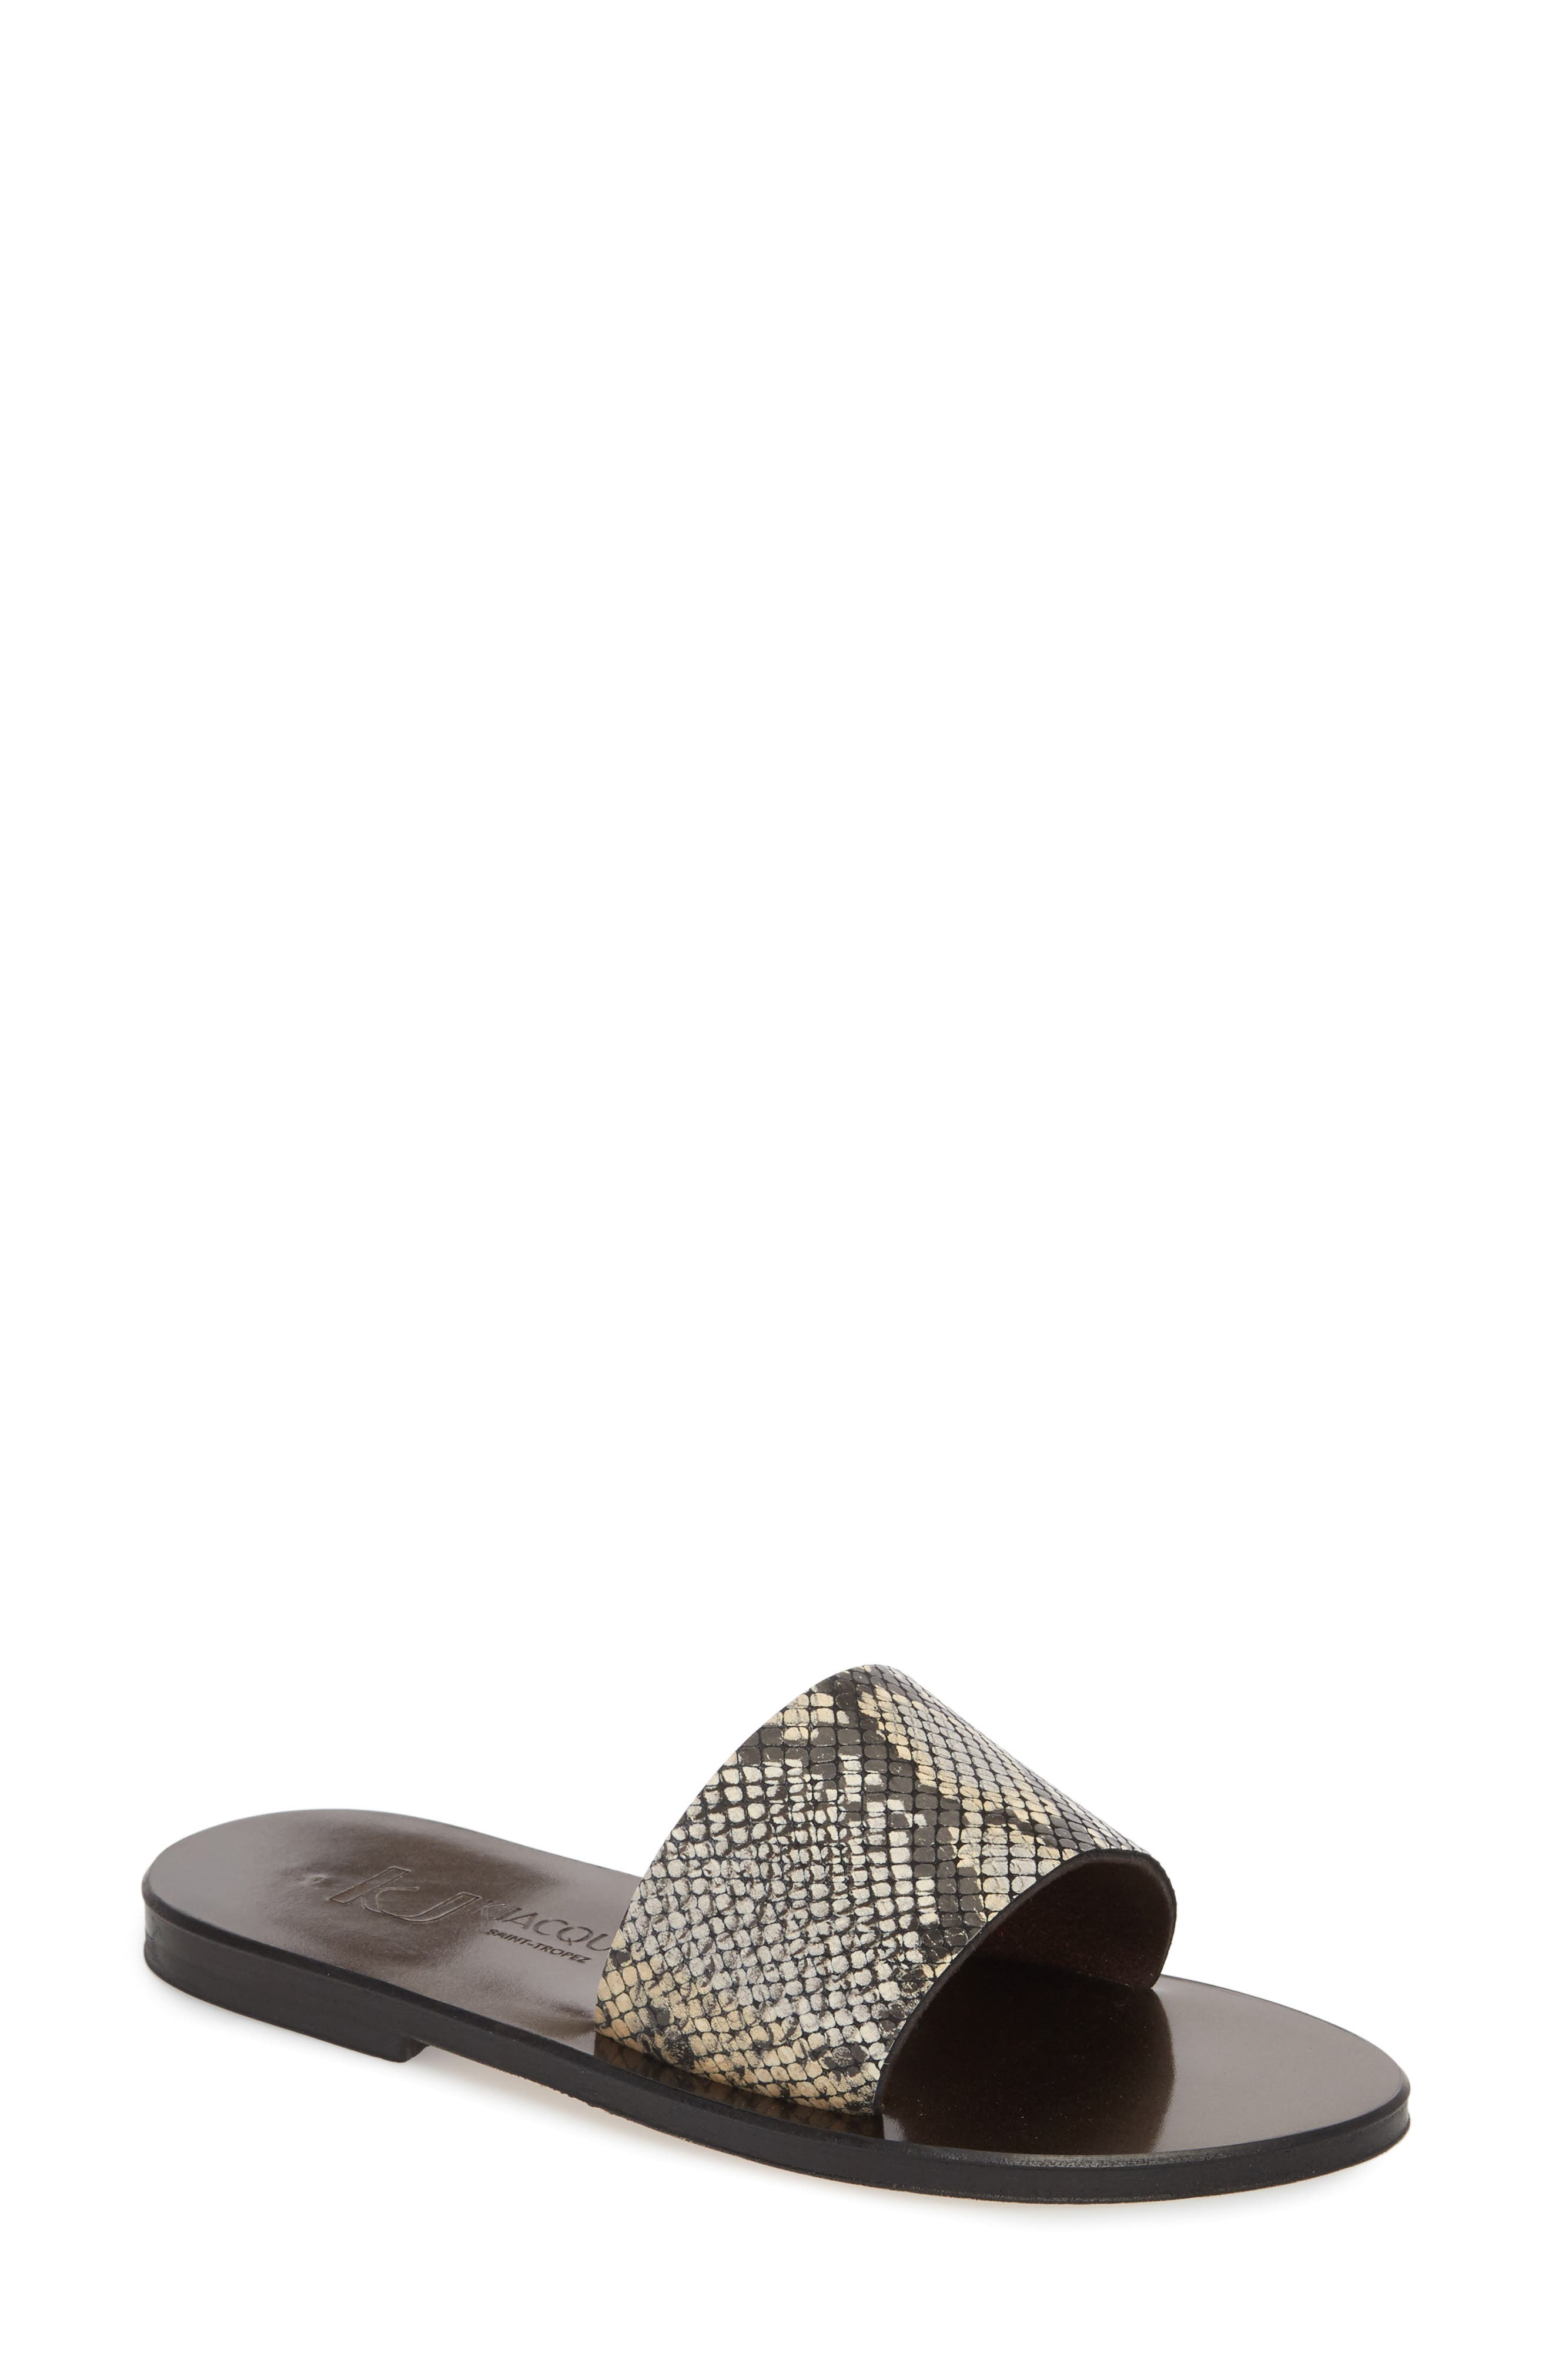 K. Jacques St. Tropez Arezzo Slide Sandal,                             Main thumbnail 1, color,                             Noir Leather